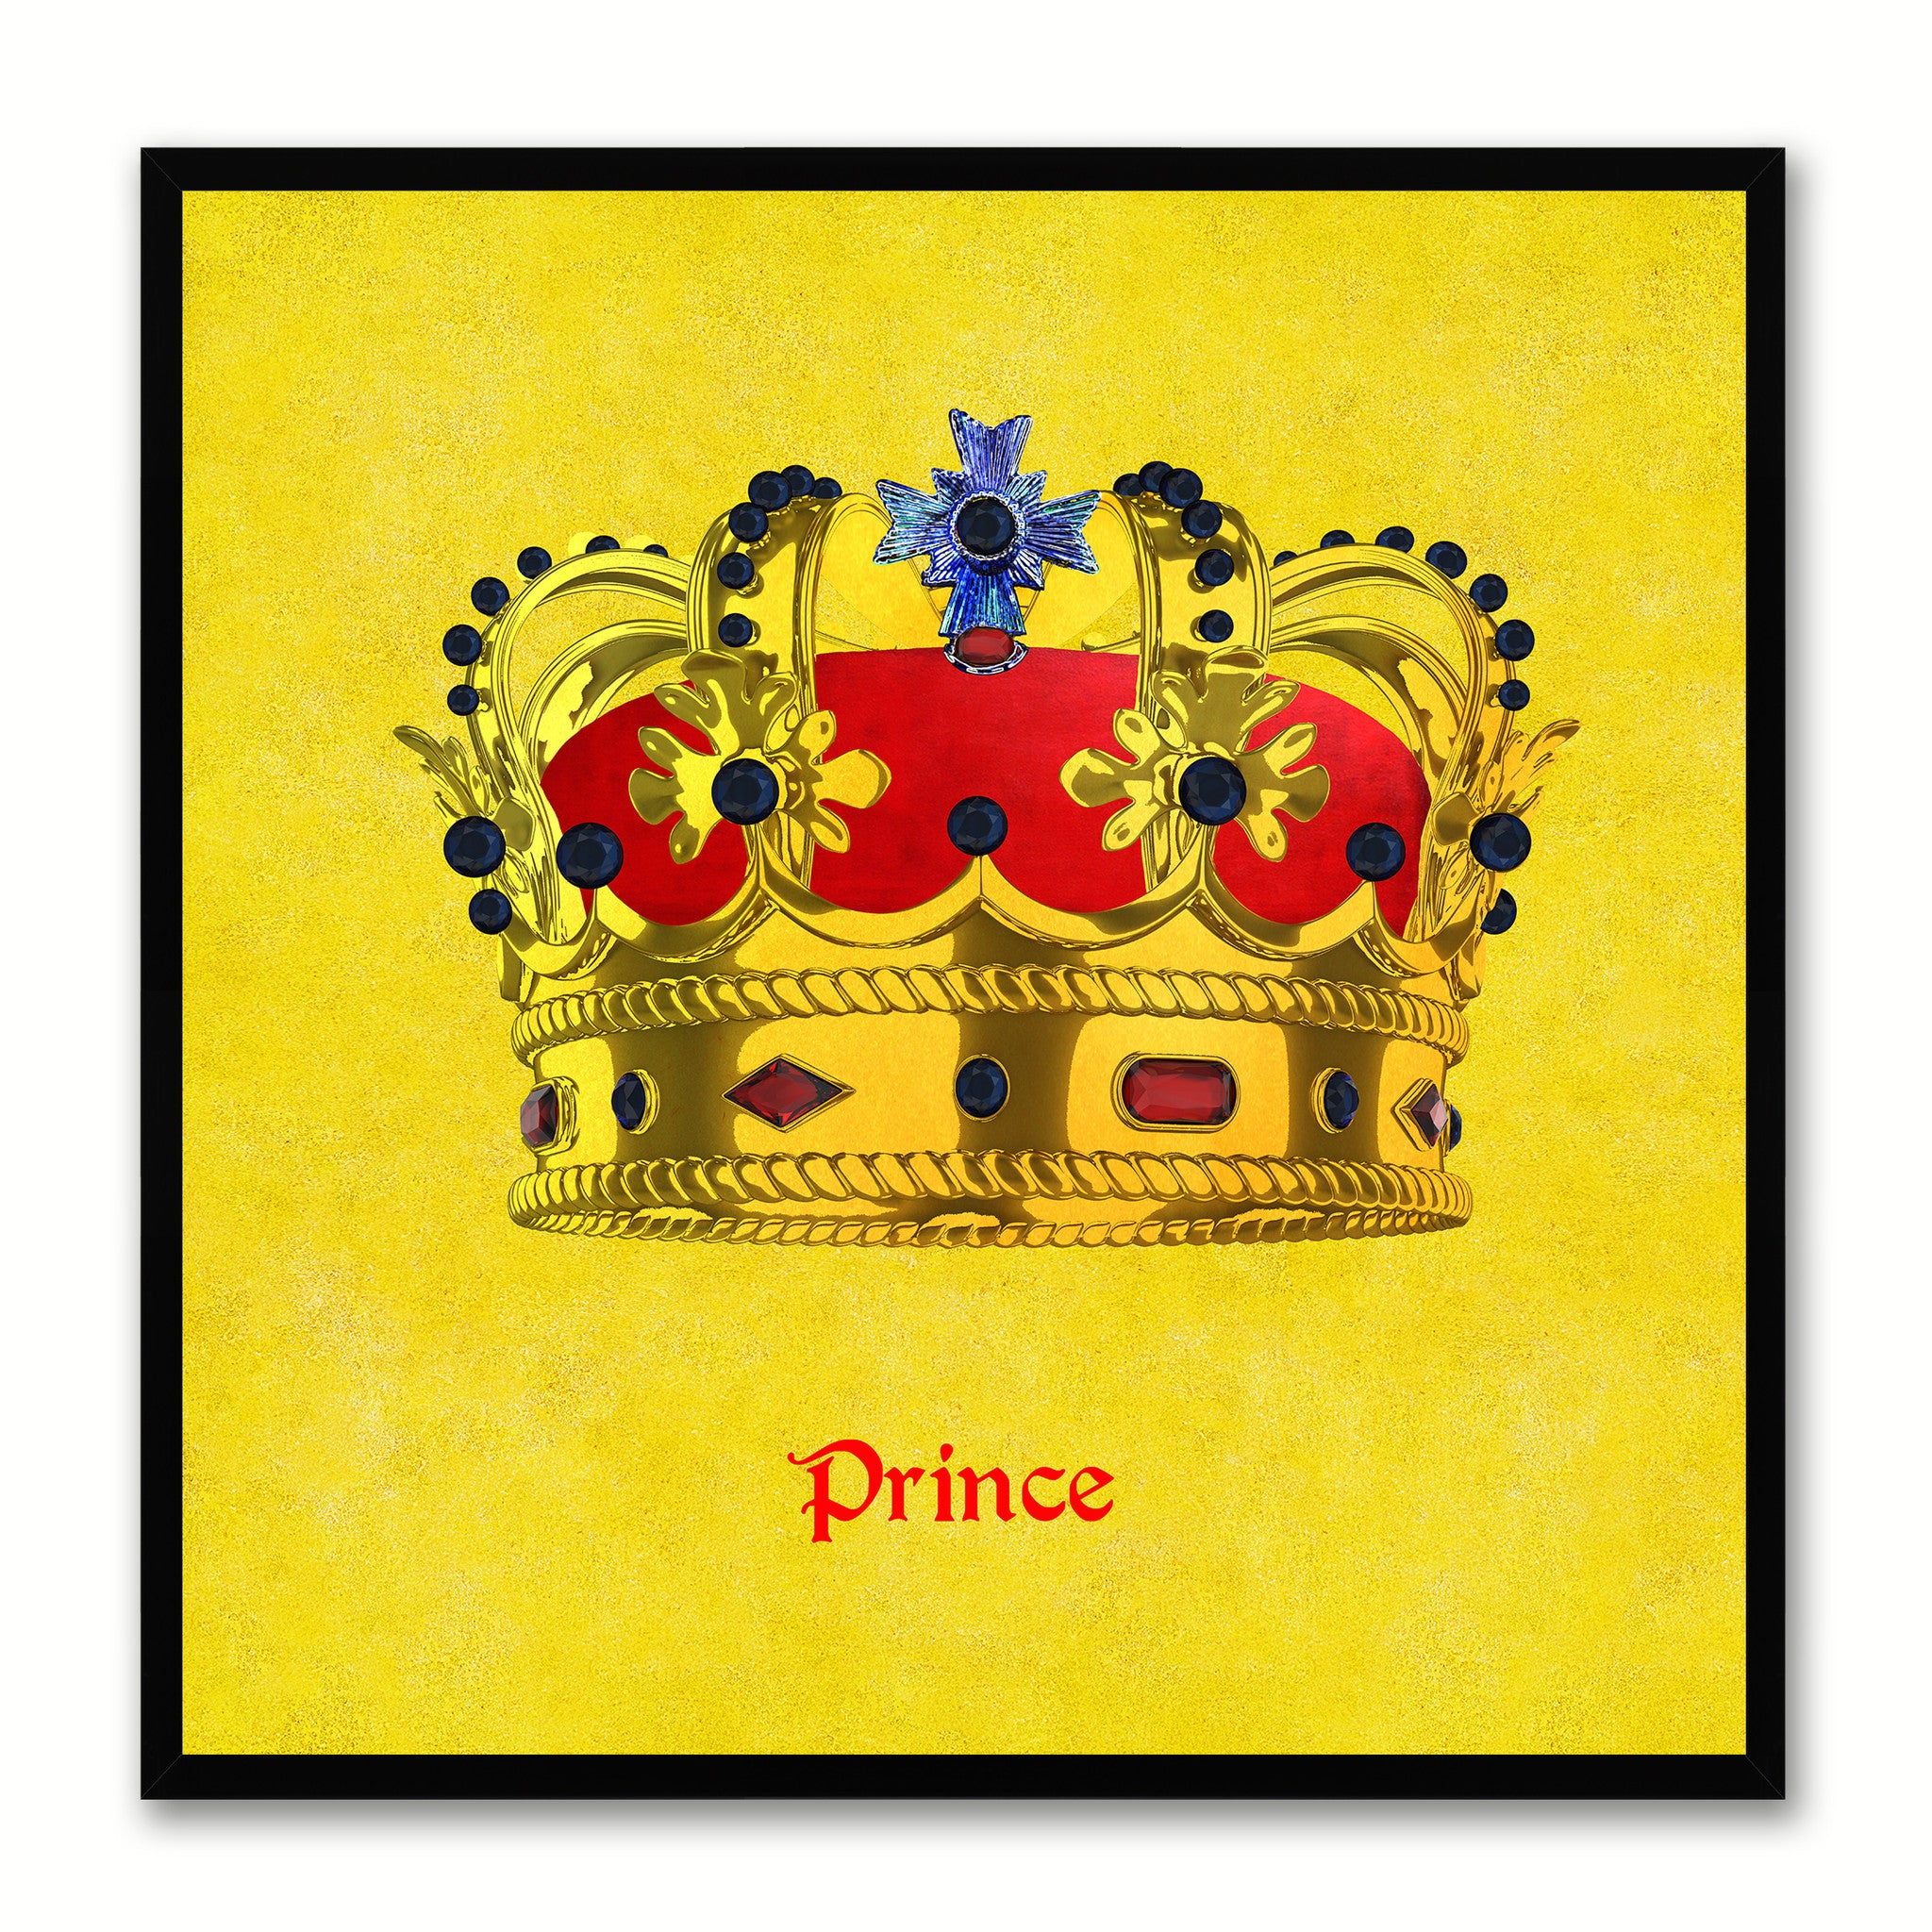 Prince Yellow Canvas Print Black Frame Kids Bedroom Wall Home Décor